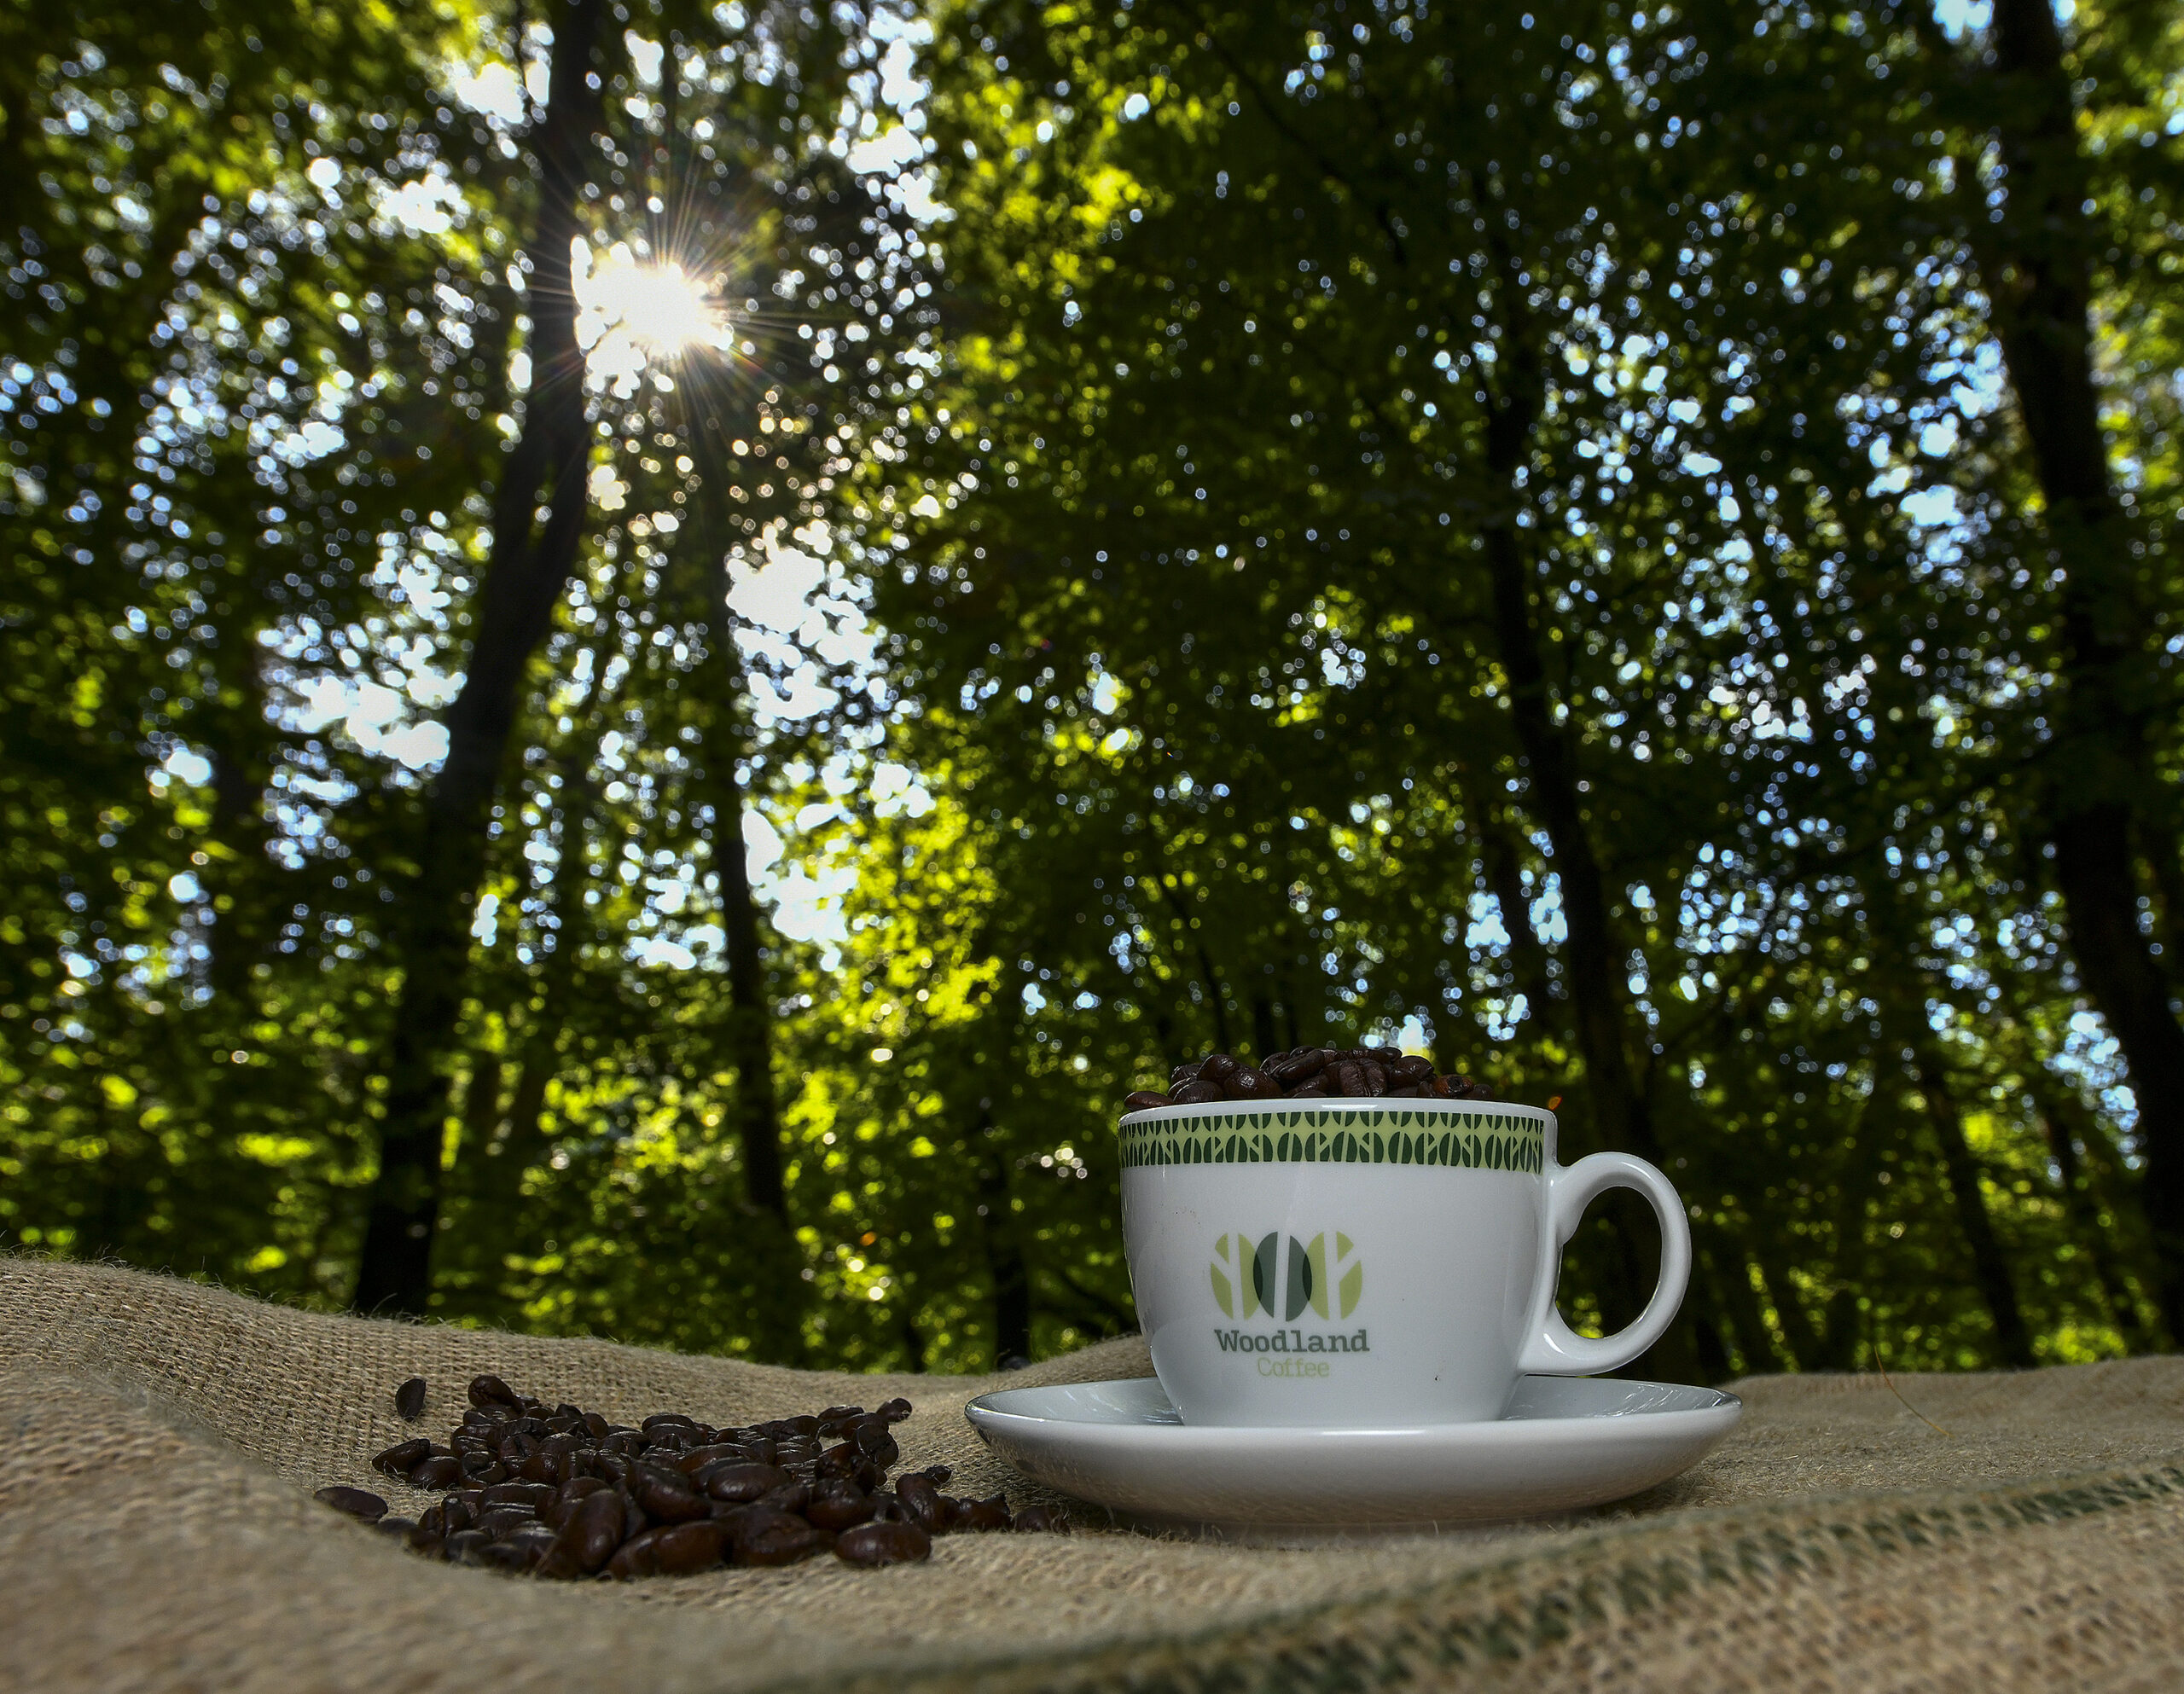 Woodland Coffee in woods